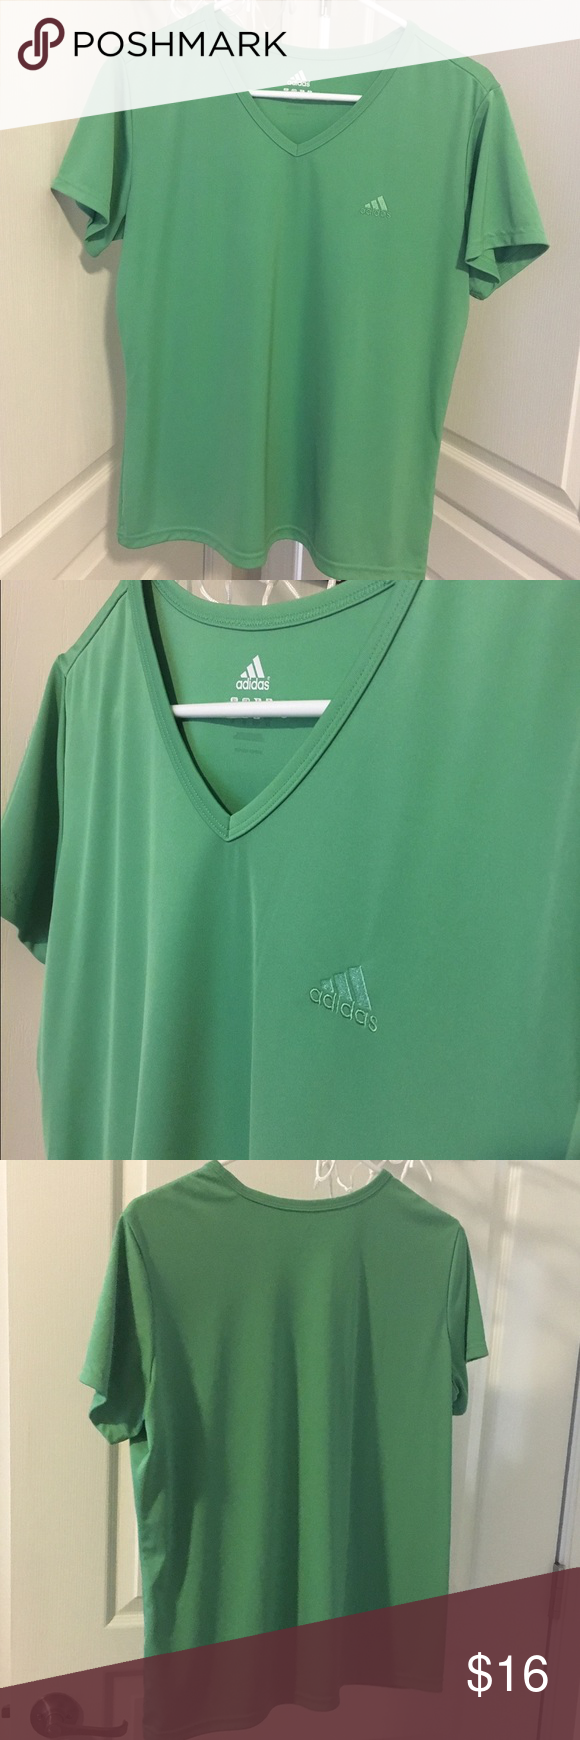 Adidas athletic top Nice material, very good condition adidas Tops Tees - Short Sleeve